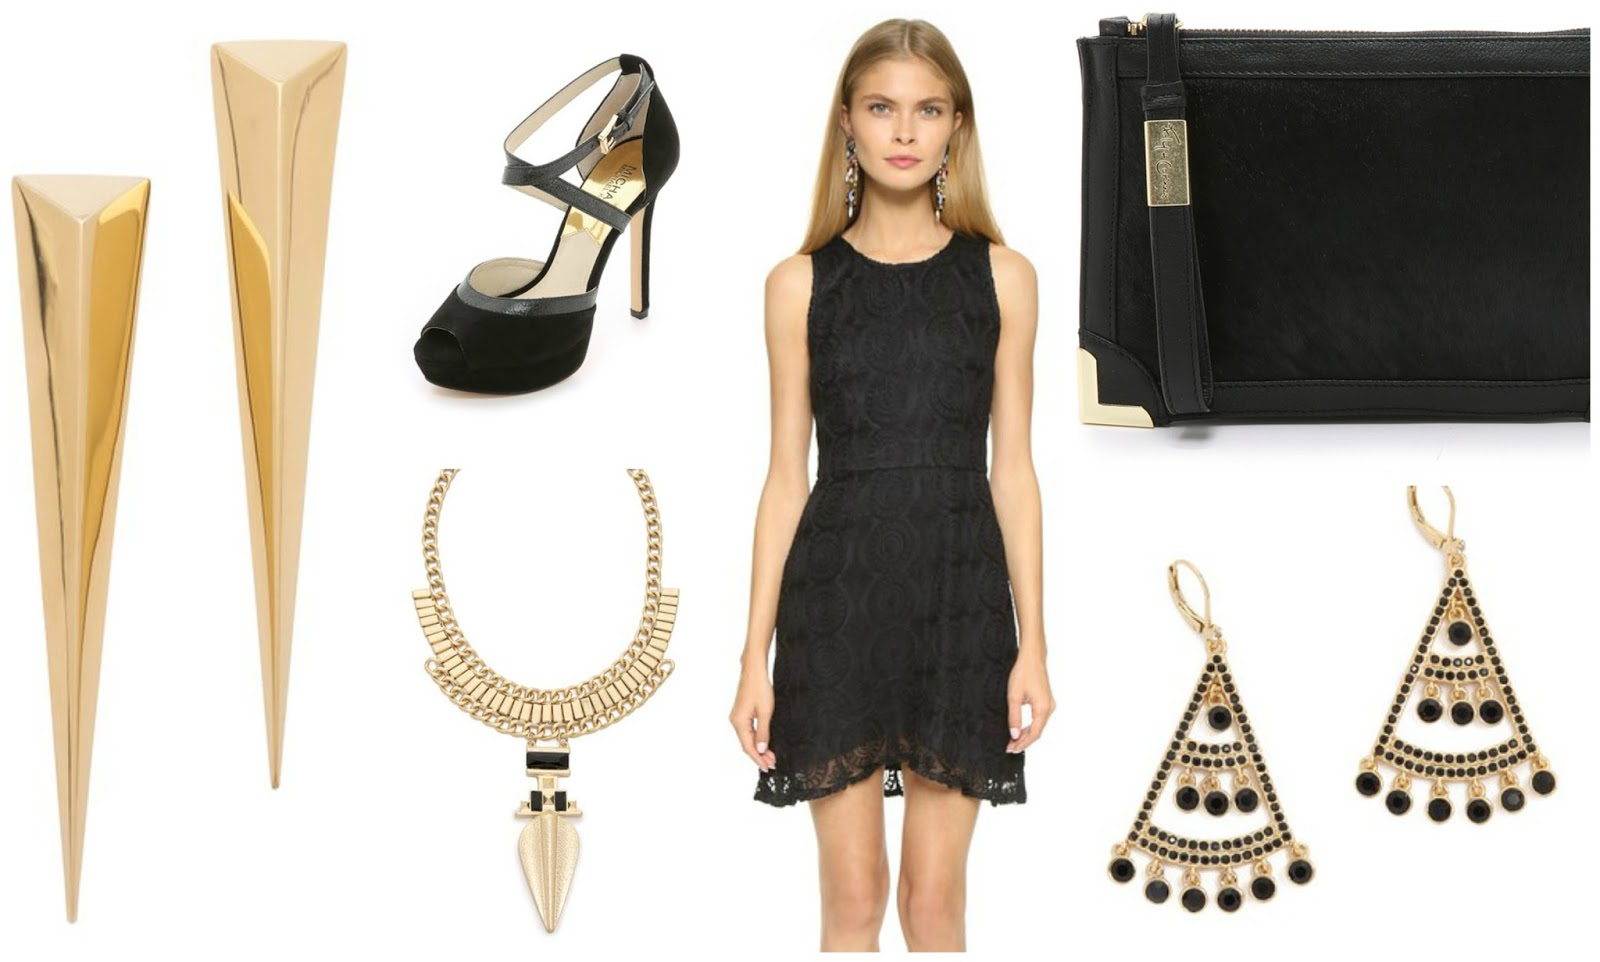 Black lace dress with gold accessories